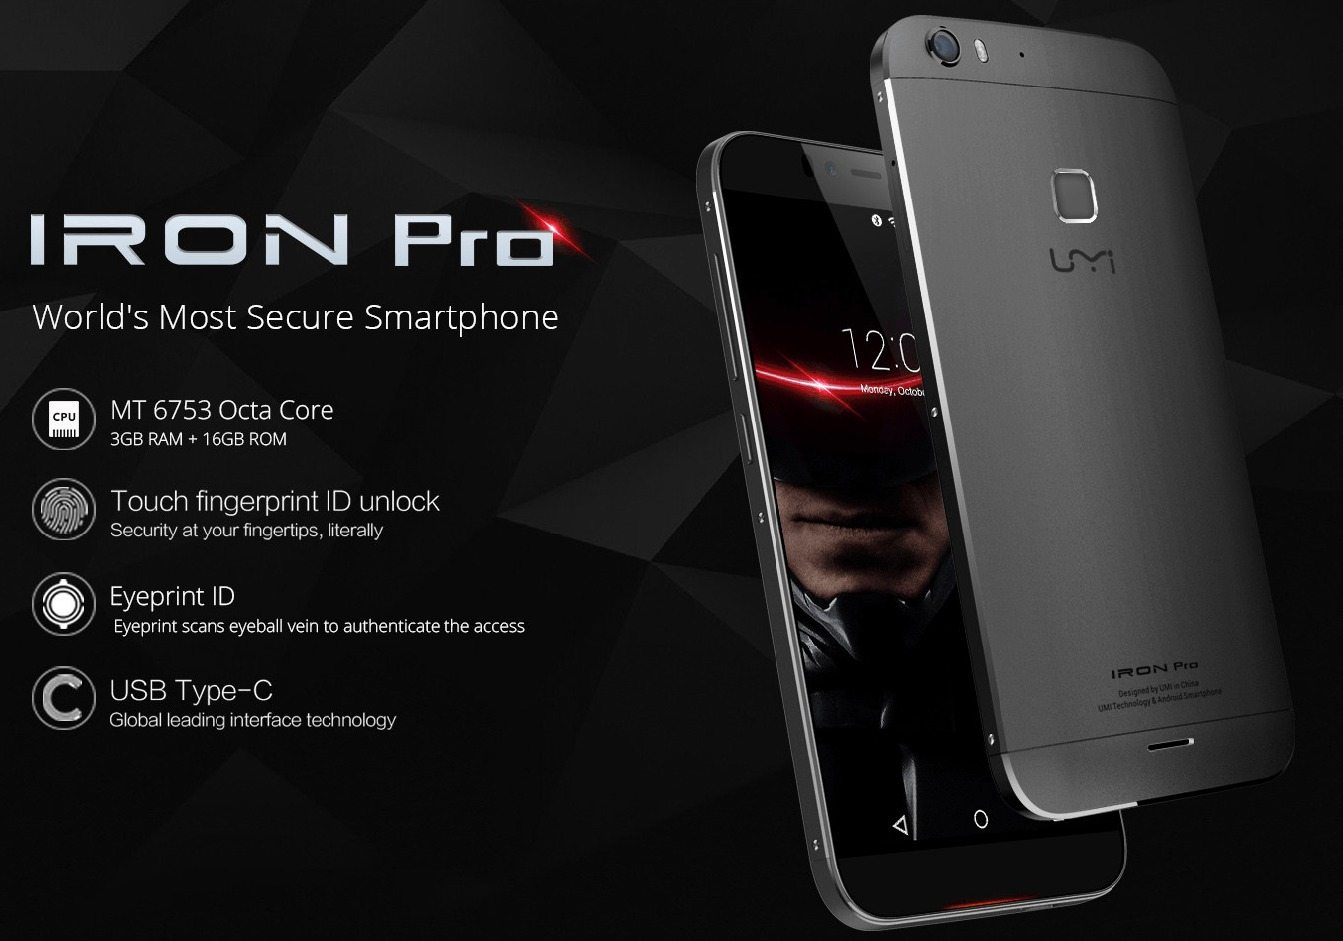 umi iron pro launched